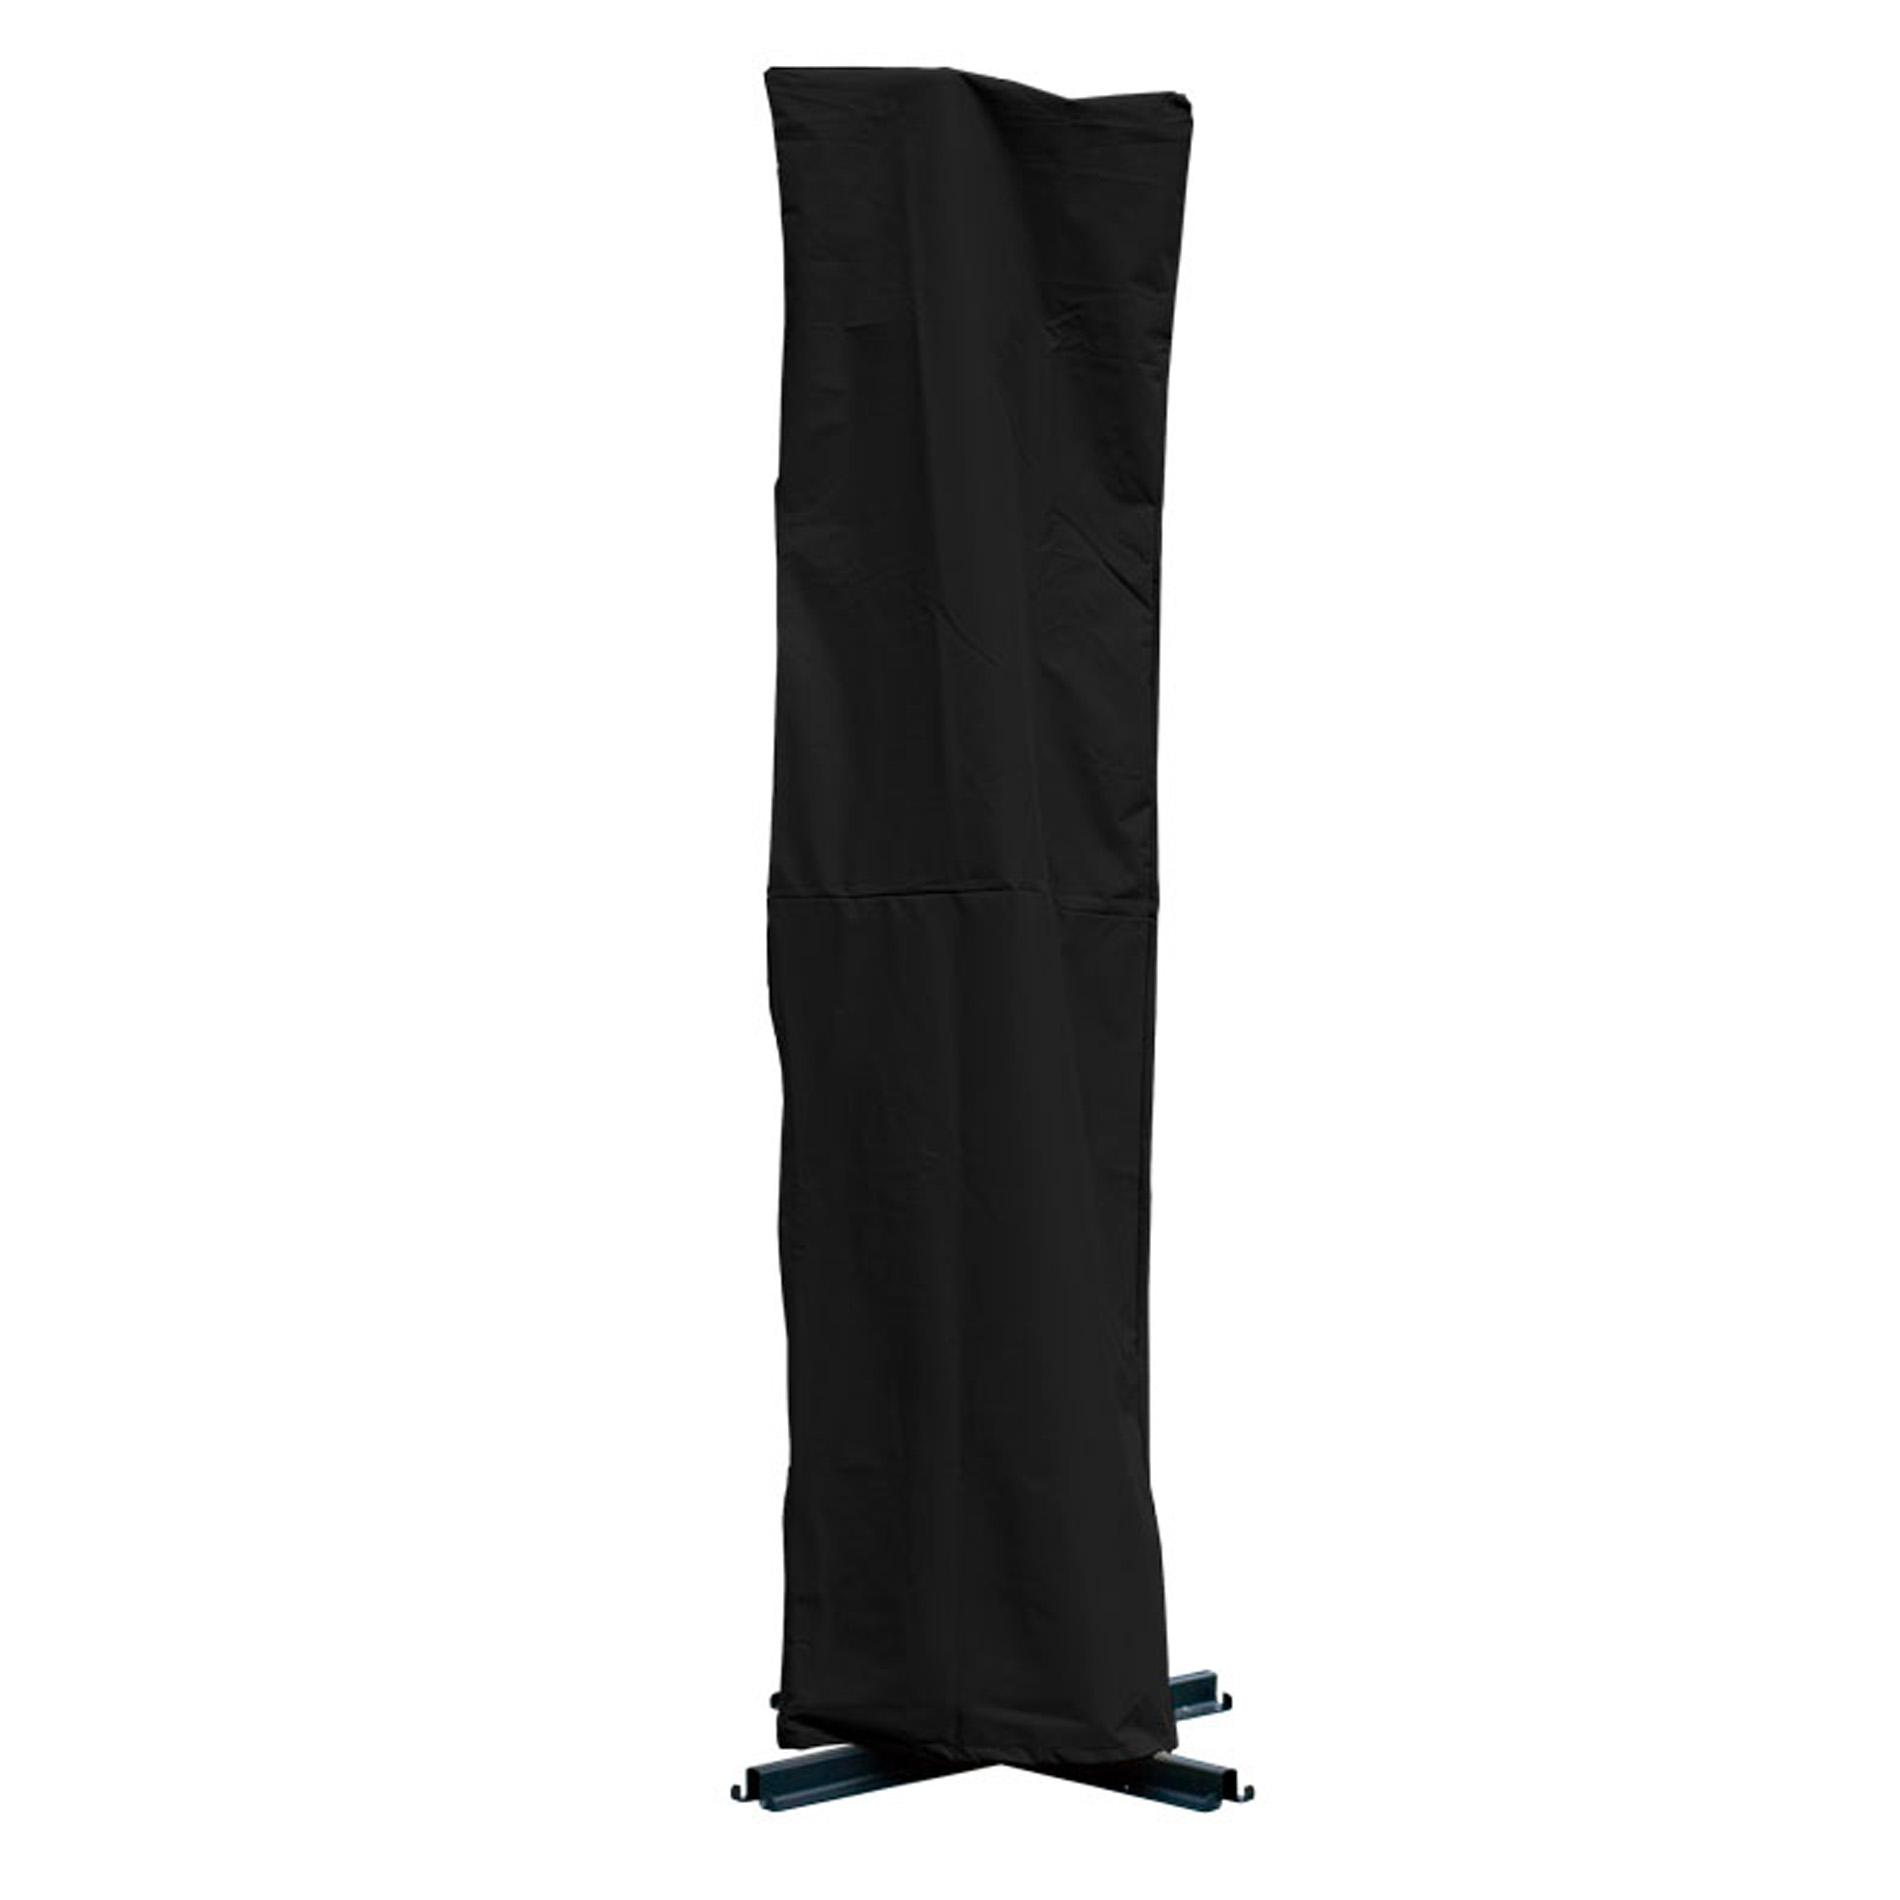 Mr. BBQ Offset Umbrella Full Length Cover